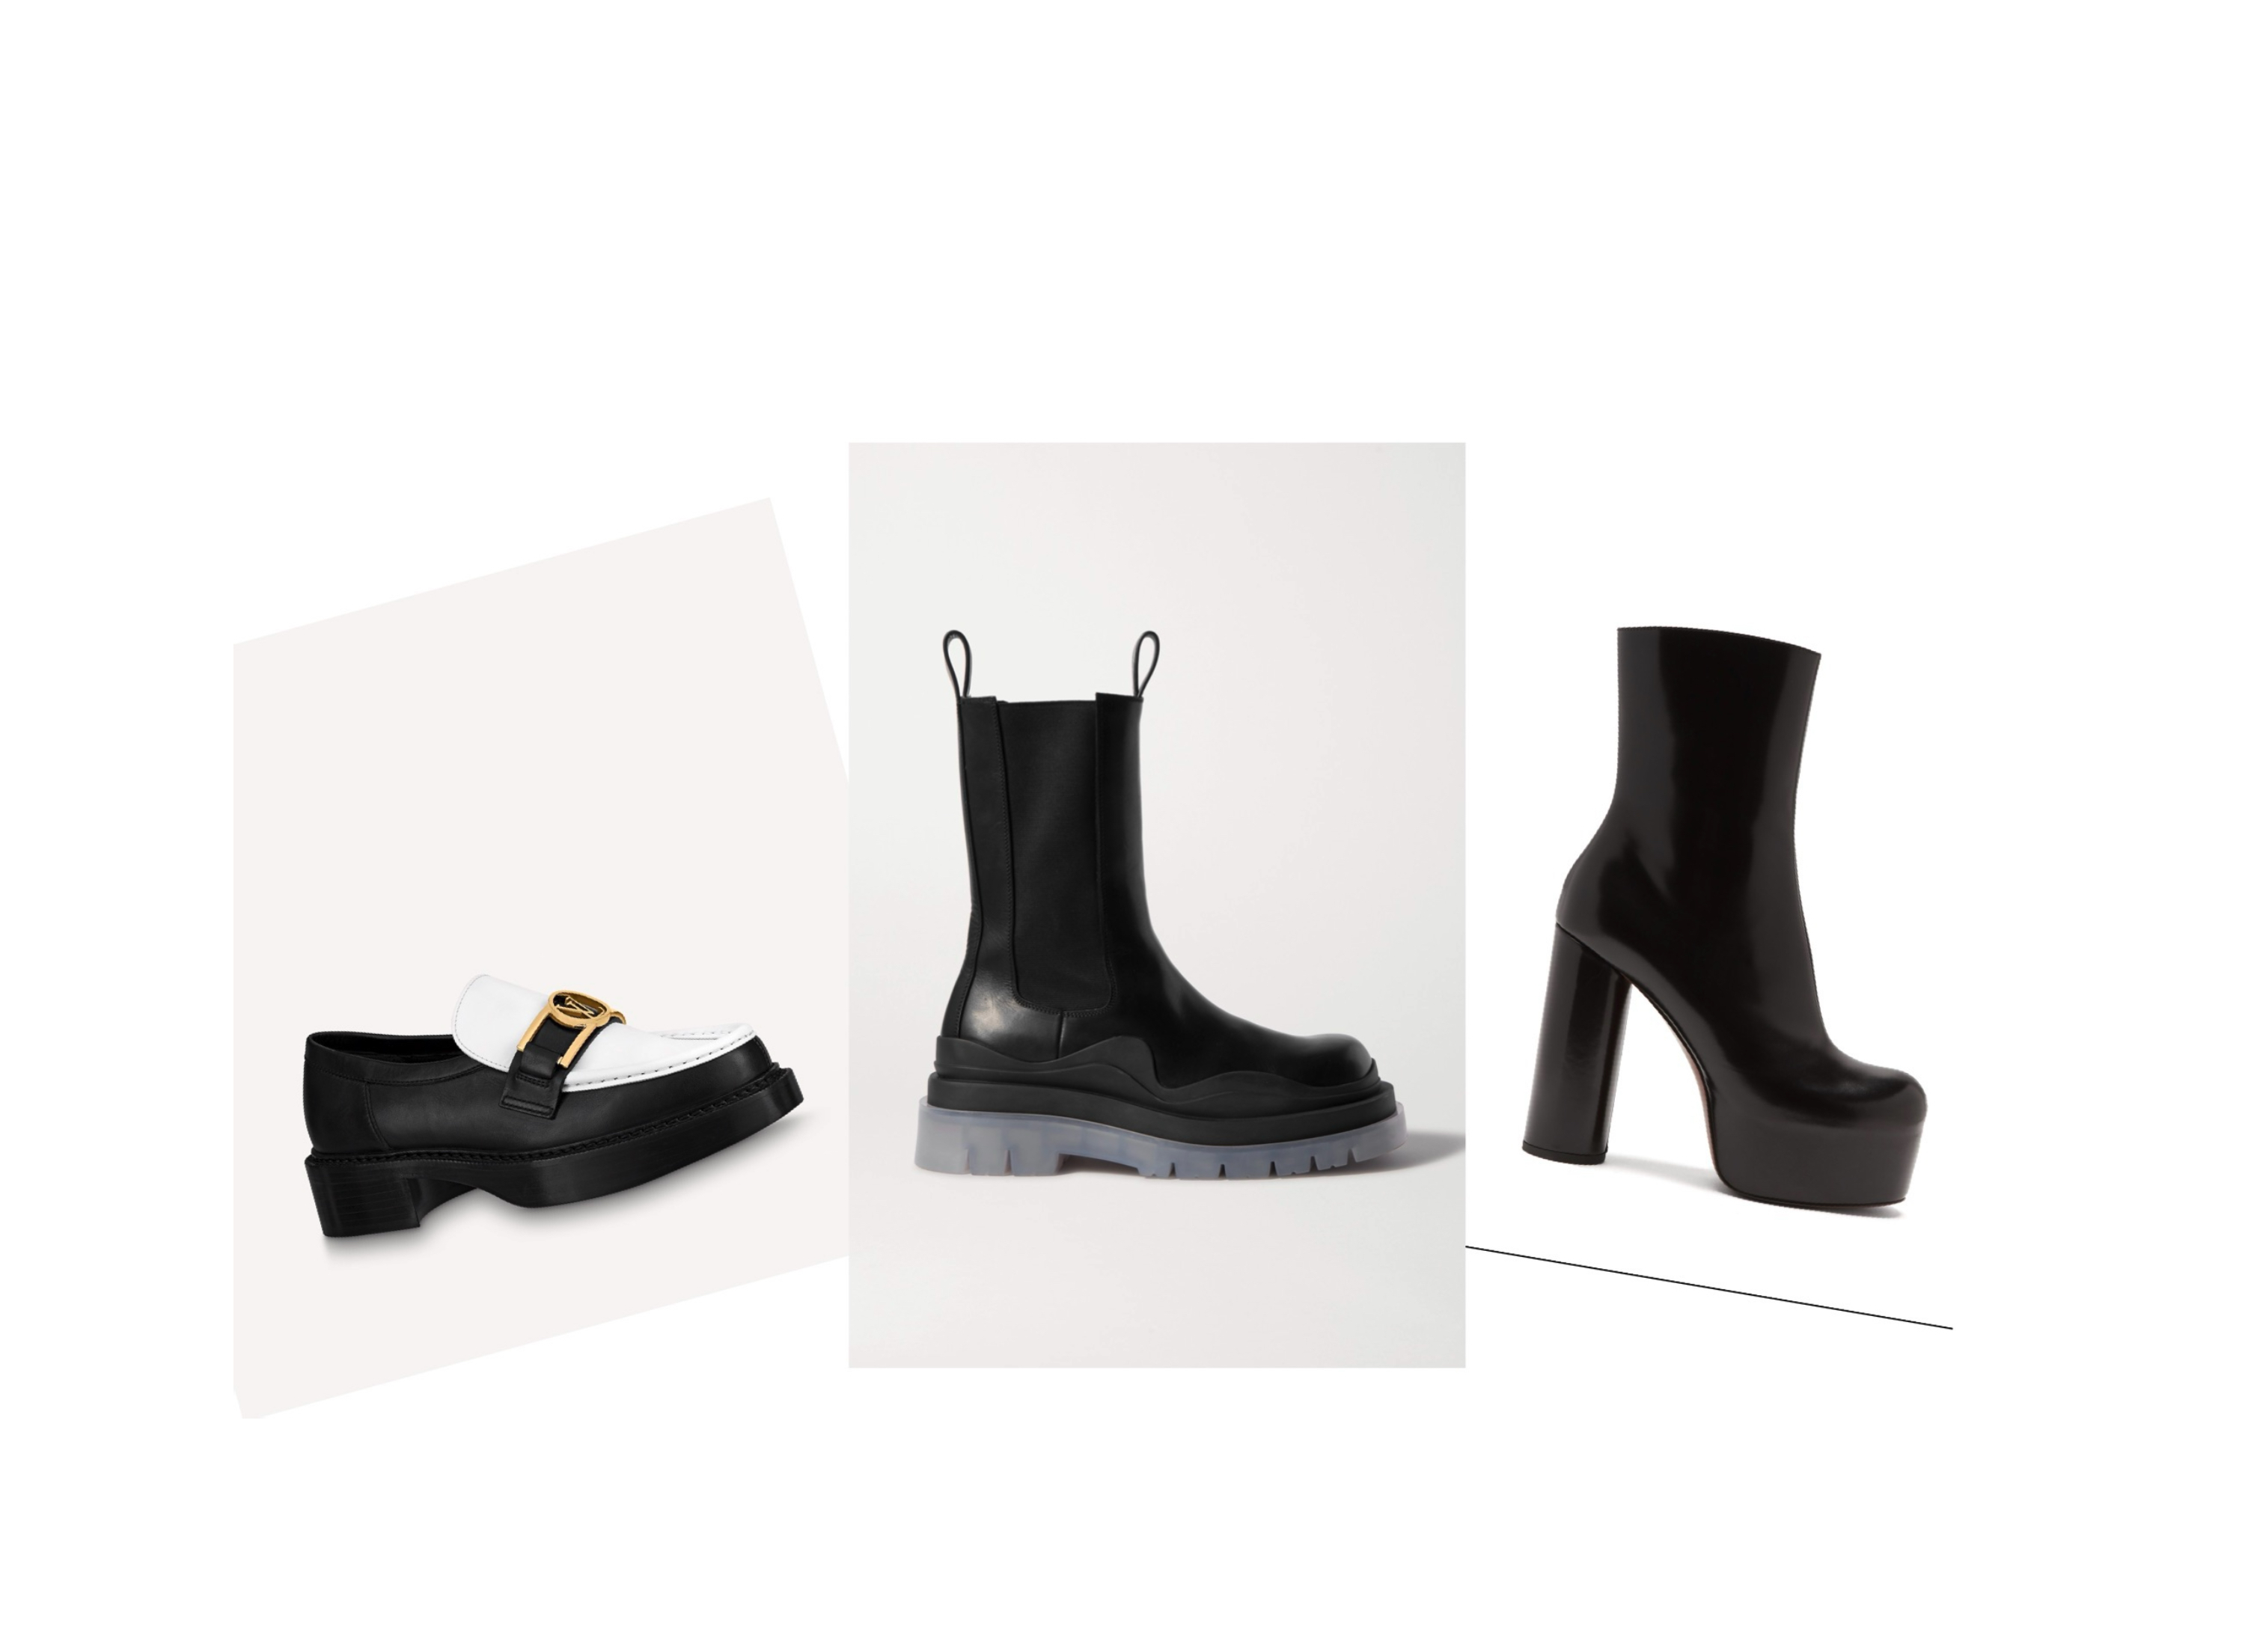 THESE CHUNKY SHOES ARE A MUST HAVE FOR FALL/WINTER '20